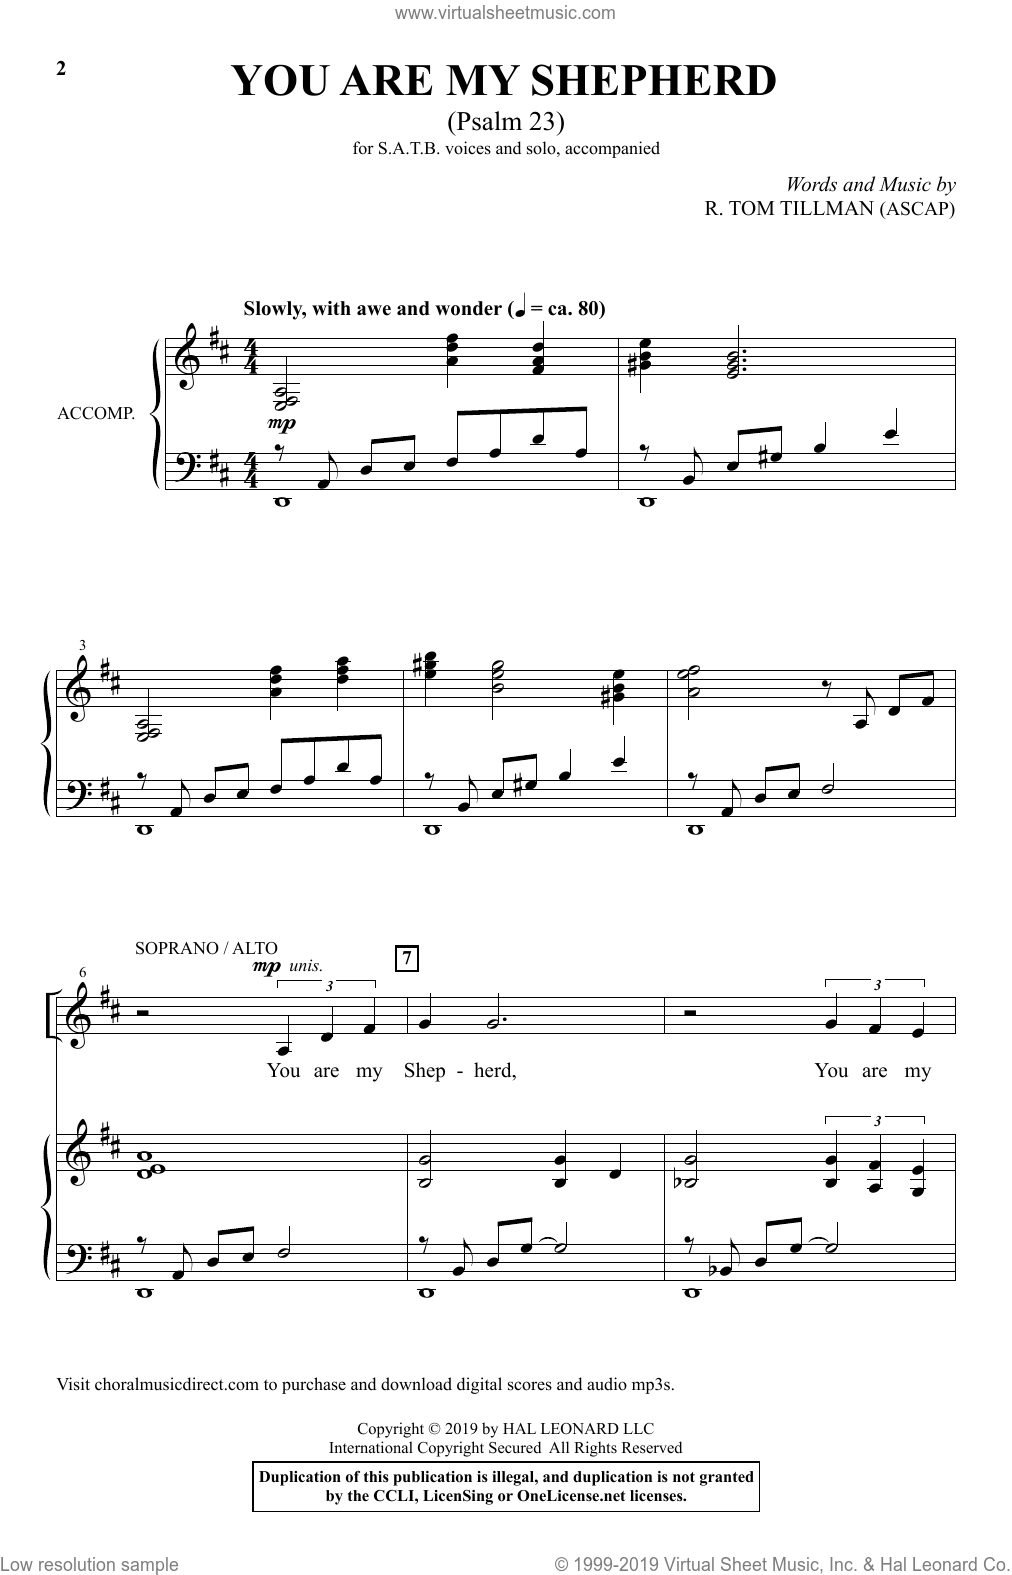 You Are My Shepherd (Psalm 23) sheet music for choir (SATB: soprano, alto, tenor, bass) by R. Tom Tillman, intermediate skill level